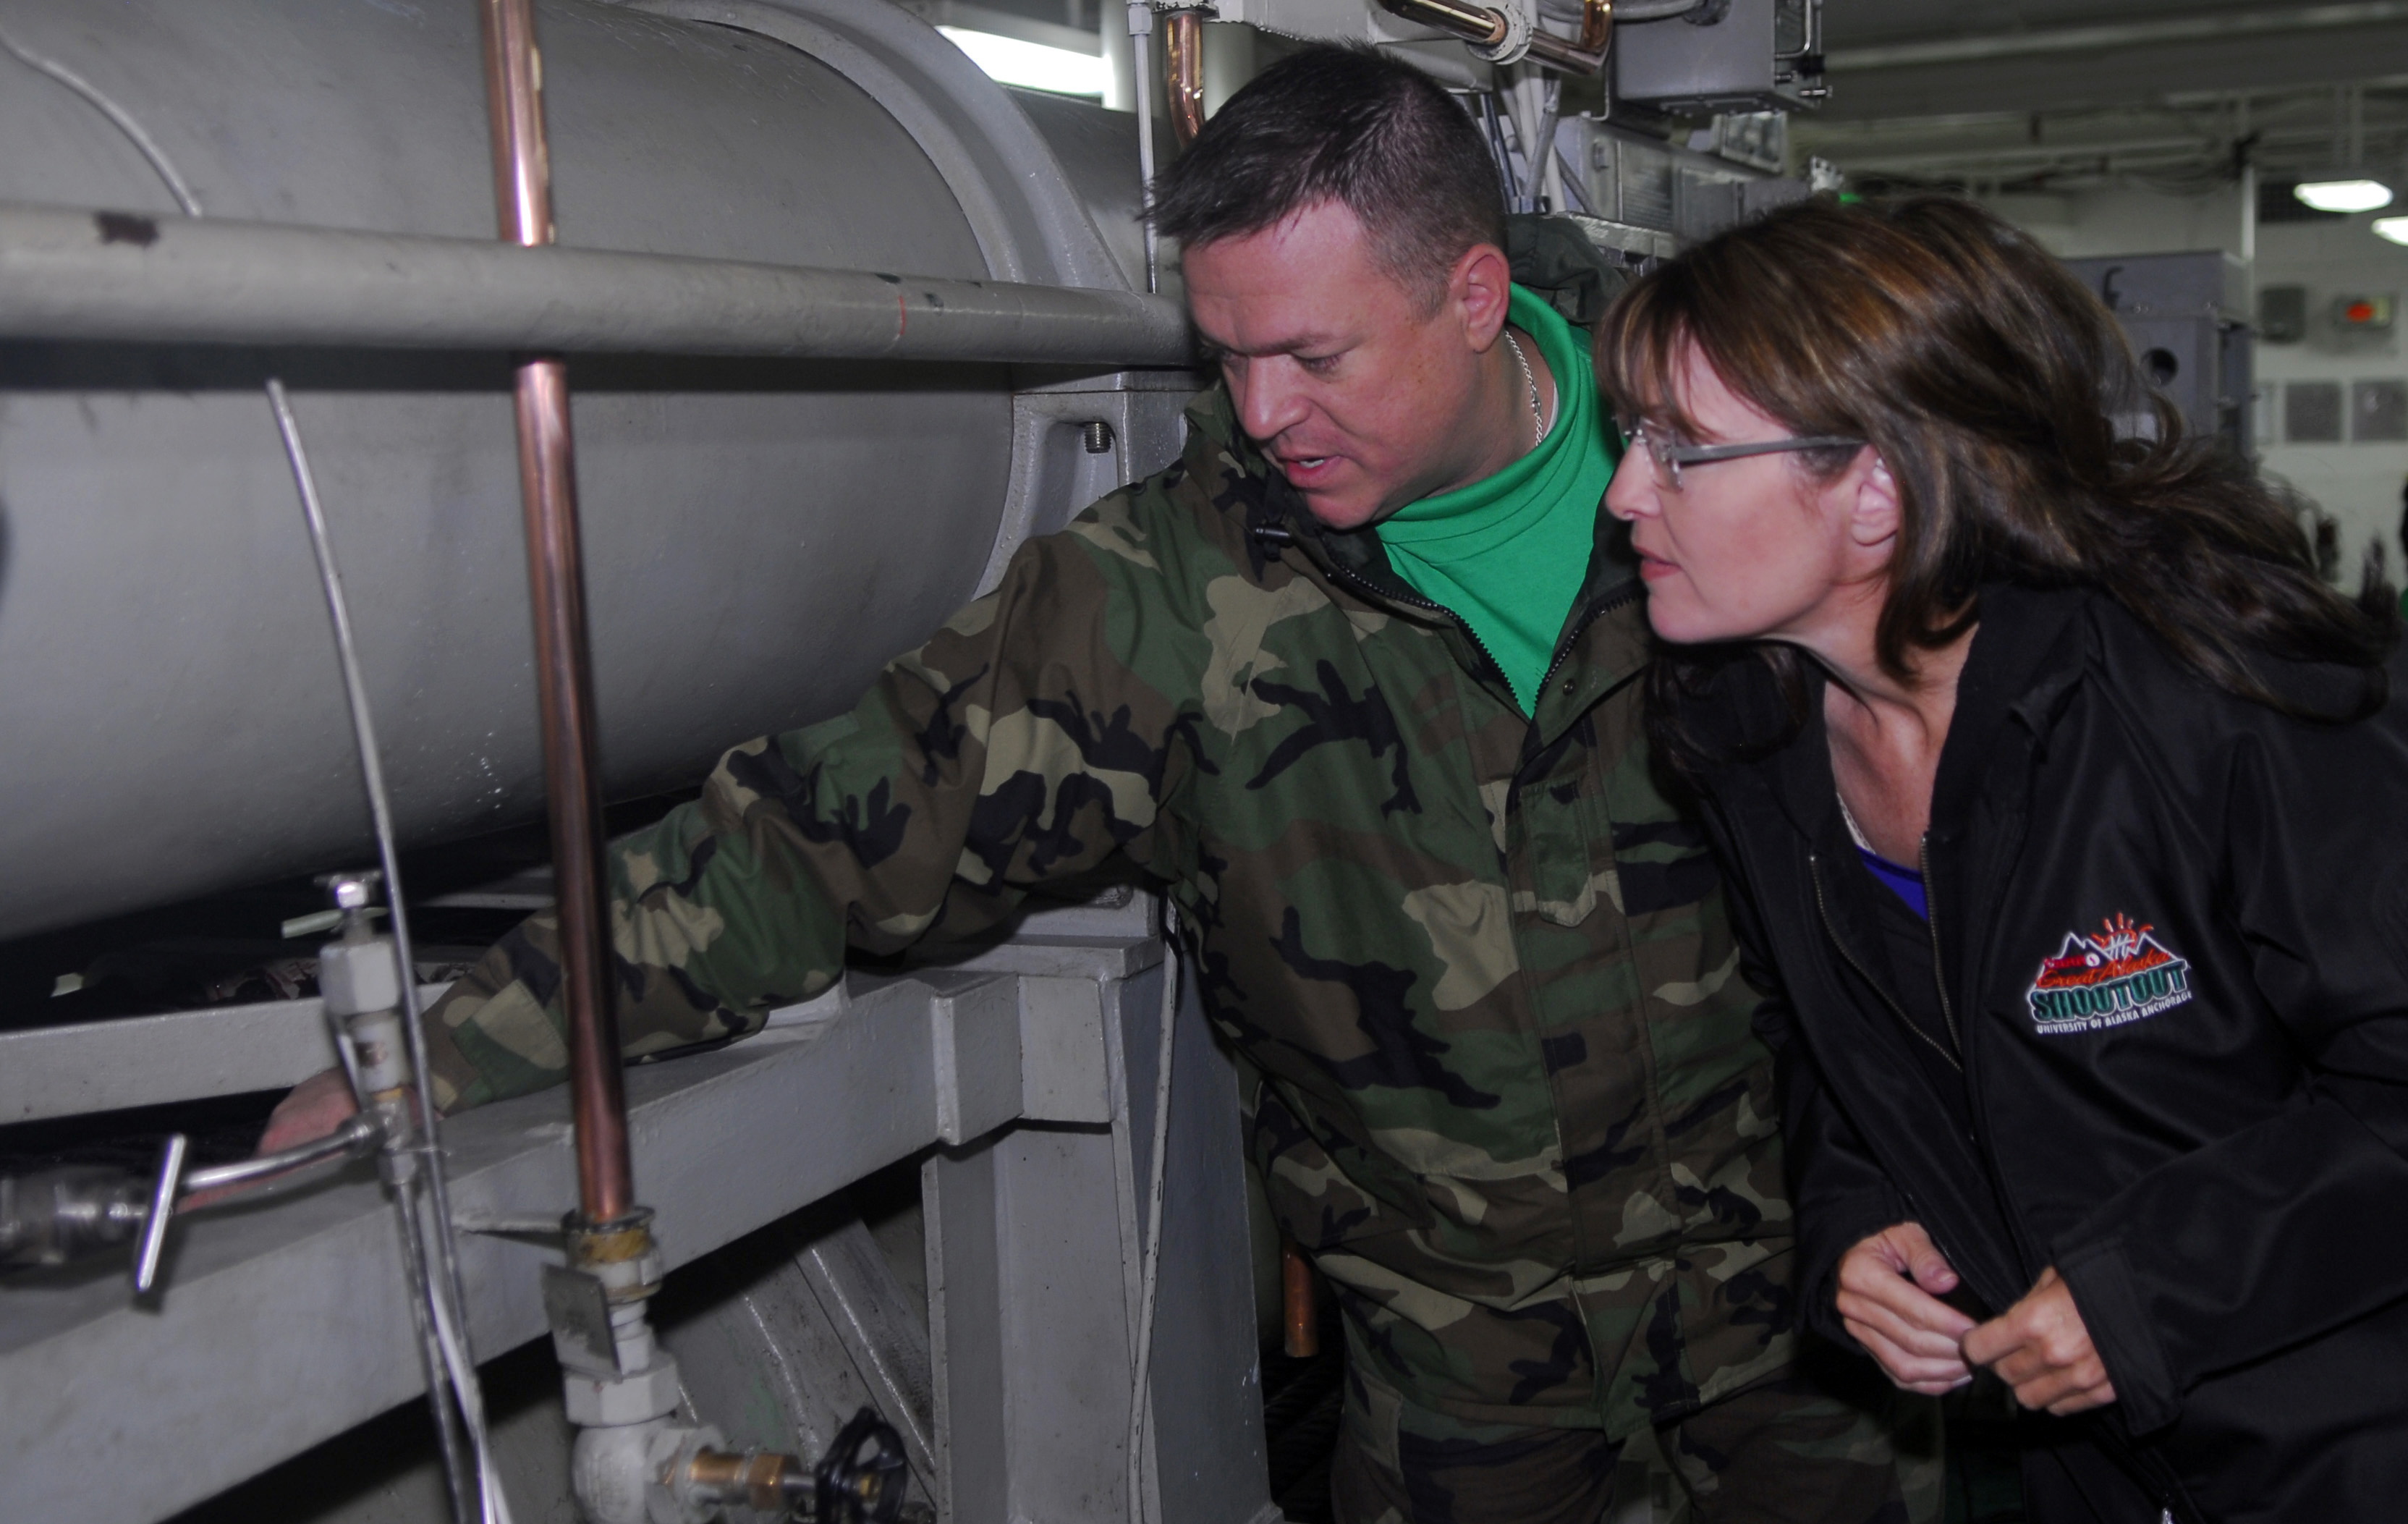 US Navy 090622-N-2475A-050 Alaska Gov. Sarah Palin, right, listens as Aviation Boatswain's Mate (Equipment) 1st Class John Childs, from Fayetteville, N.C., explains the basic components and functions of an arresting gear engine